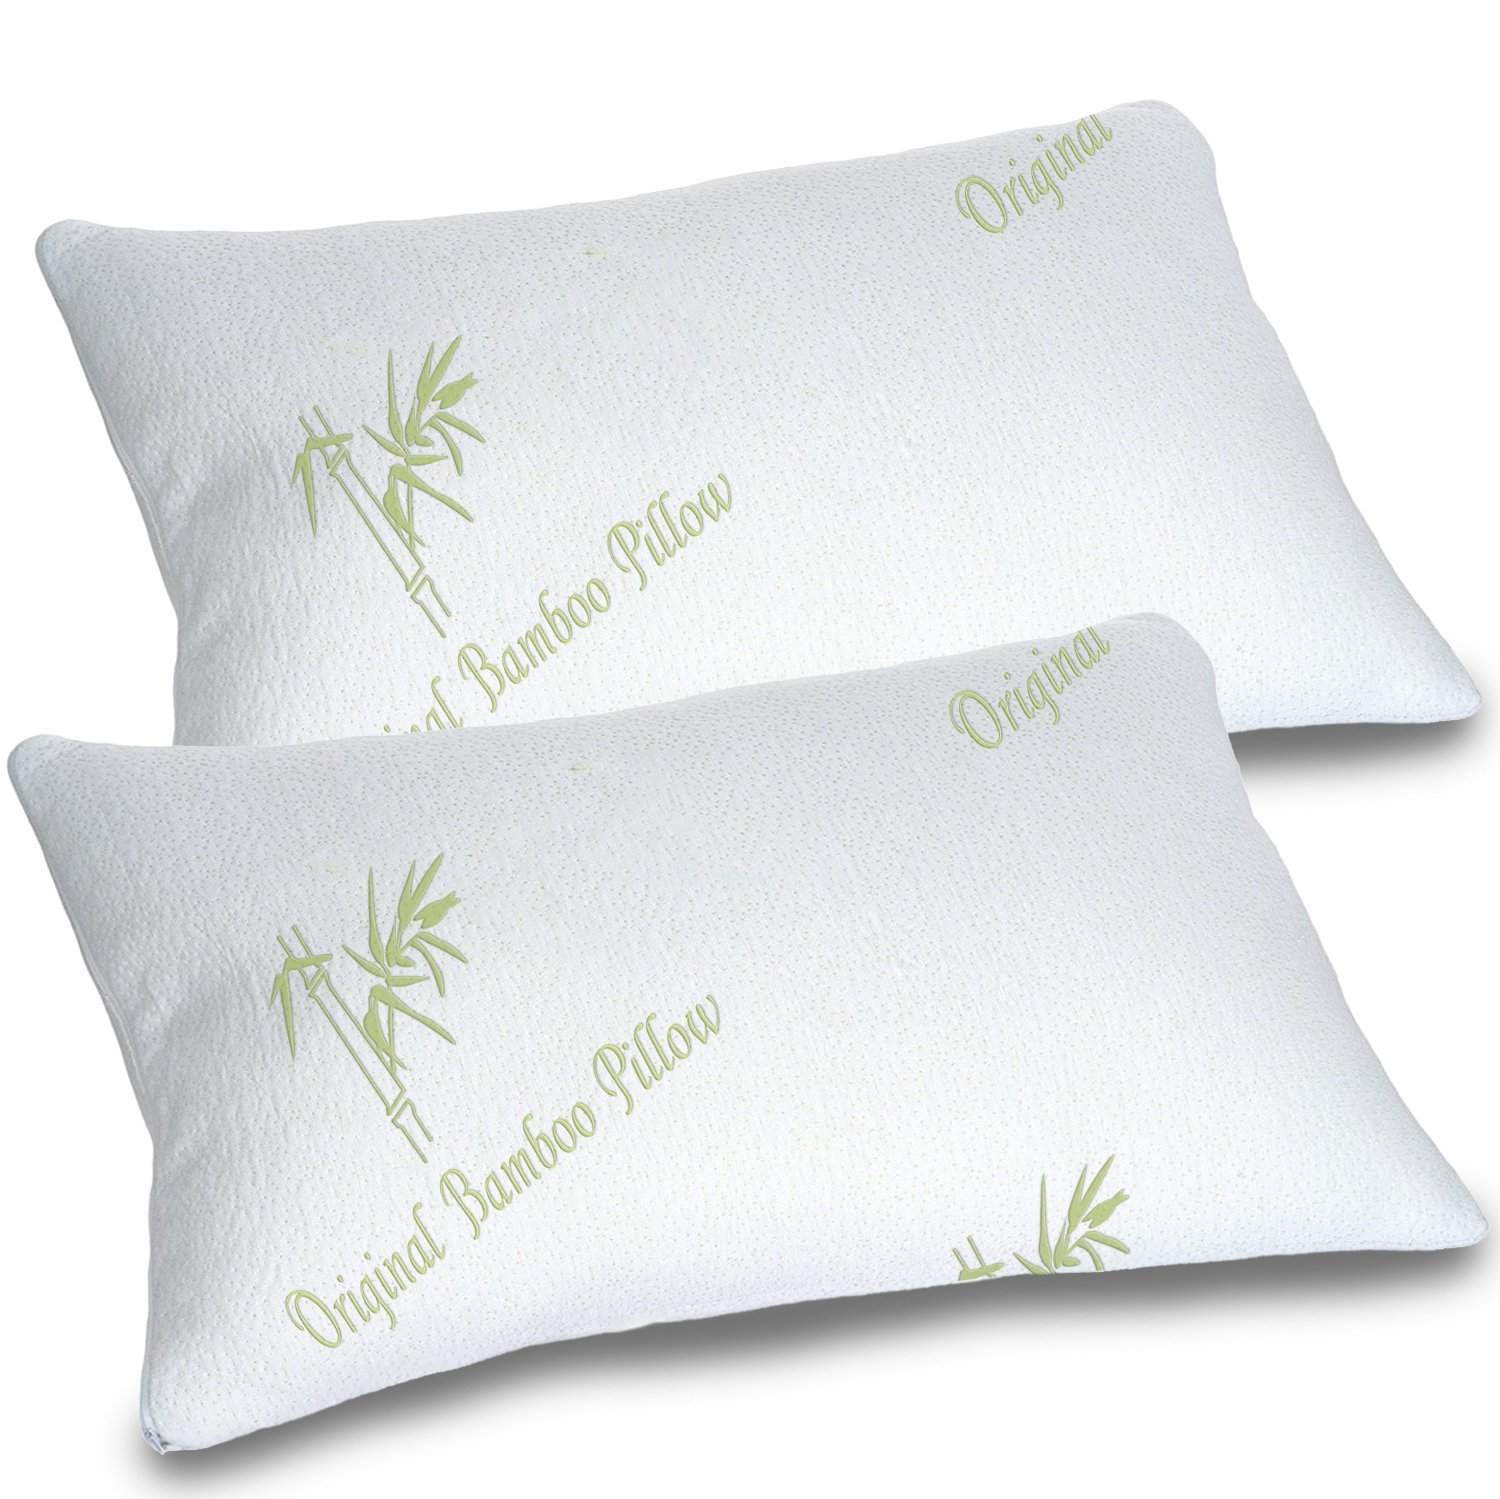 Bamboo Pillows for Sleeping Set of 2 - Standard Queen Size - Adjustable Loft Cool Shredded Memory Foam Bed Pillow - Cooling Hypoallergenic Luxury Cover - Comfort for Back Side and Stomach Sleeper (2)